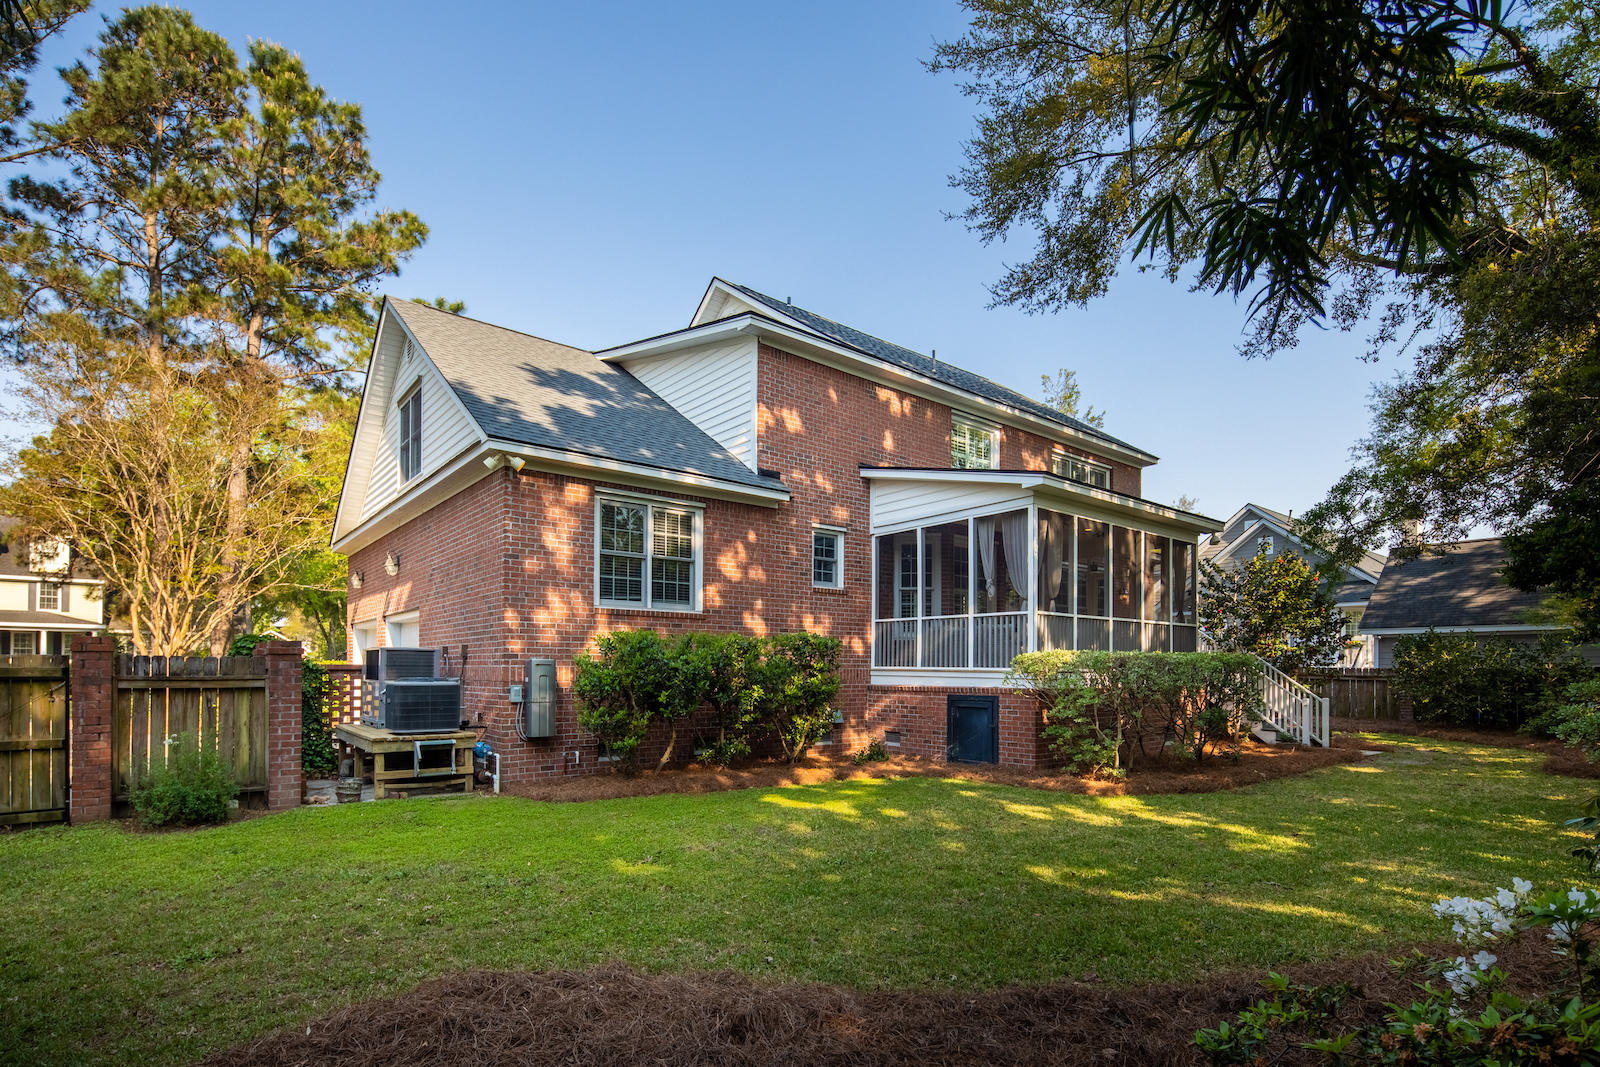 Stiles Point Plantation Homes For Sale - 742 Whispering Marsh, Charleston, SC - 8